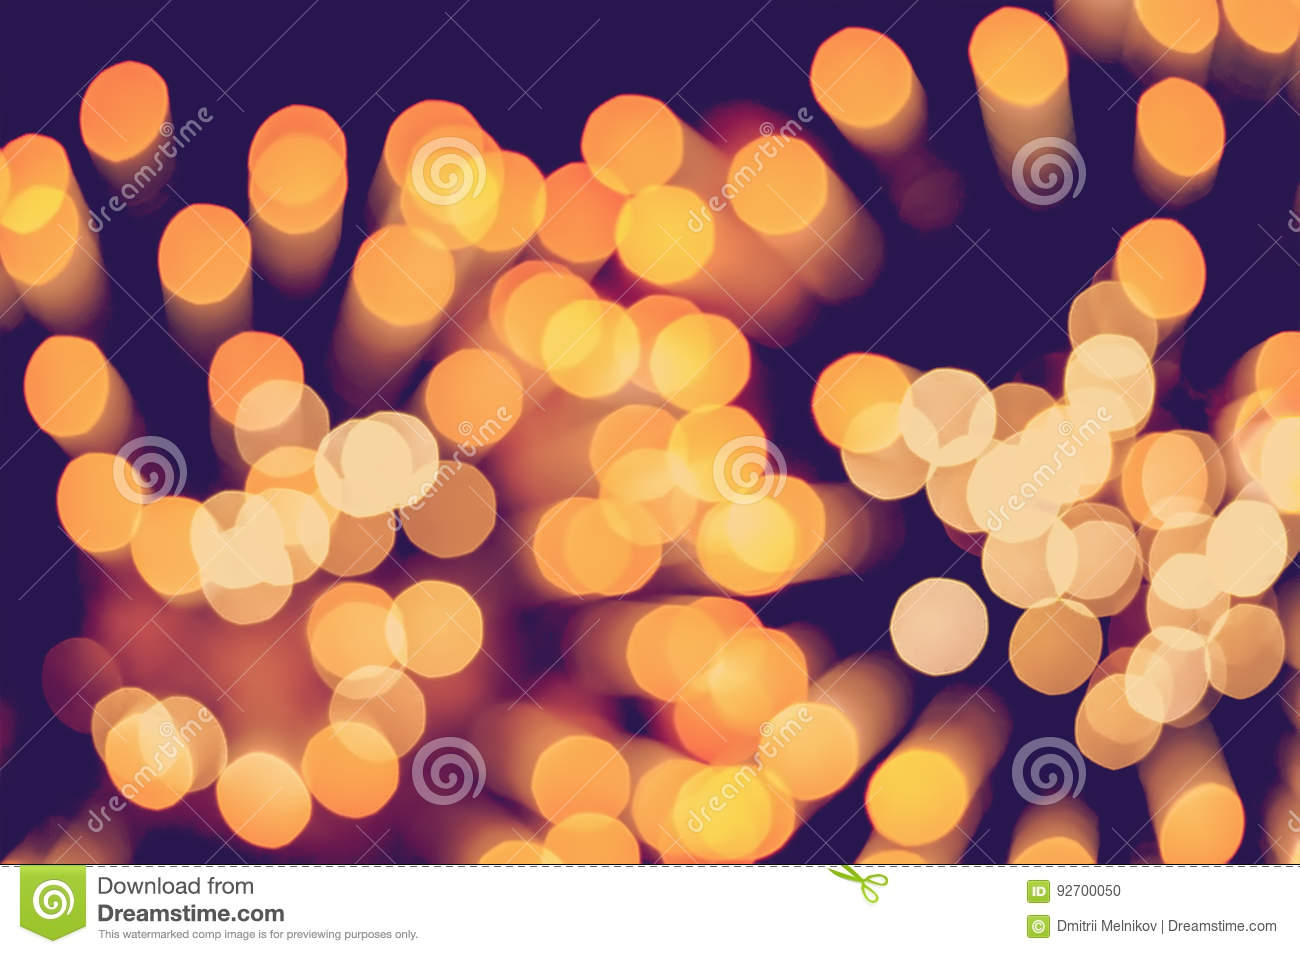 Christmas background. Festive elegant abstract background with bokeh lights and stars